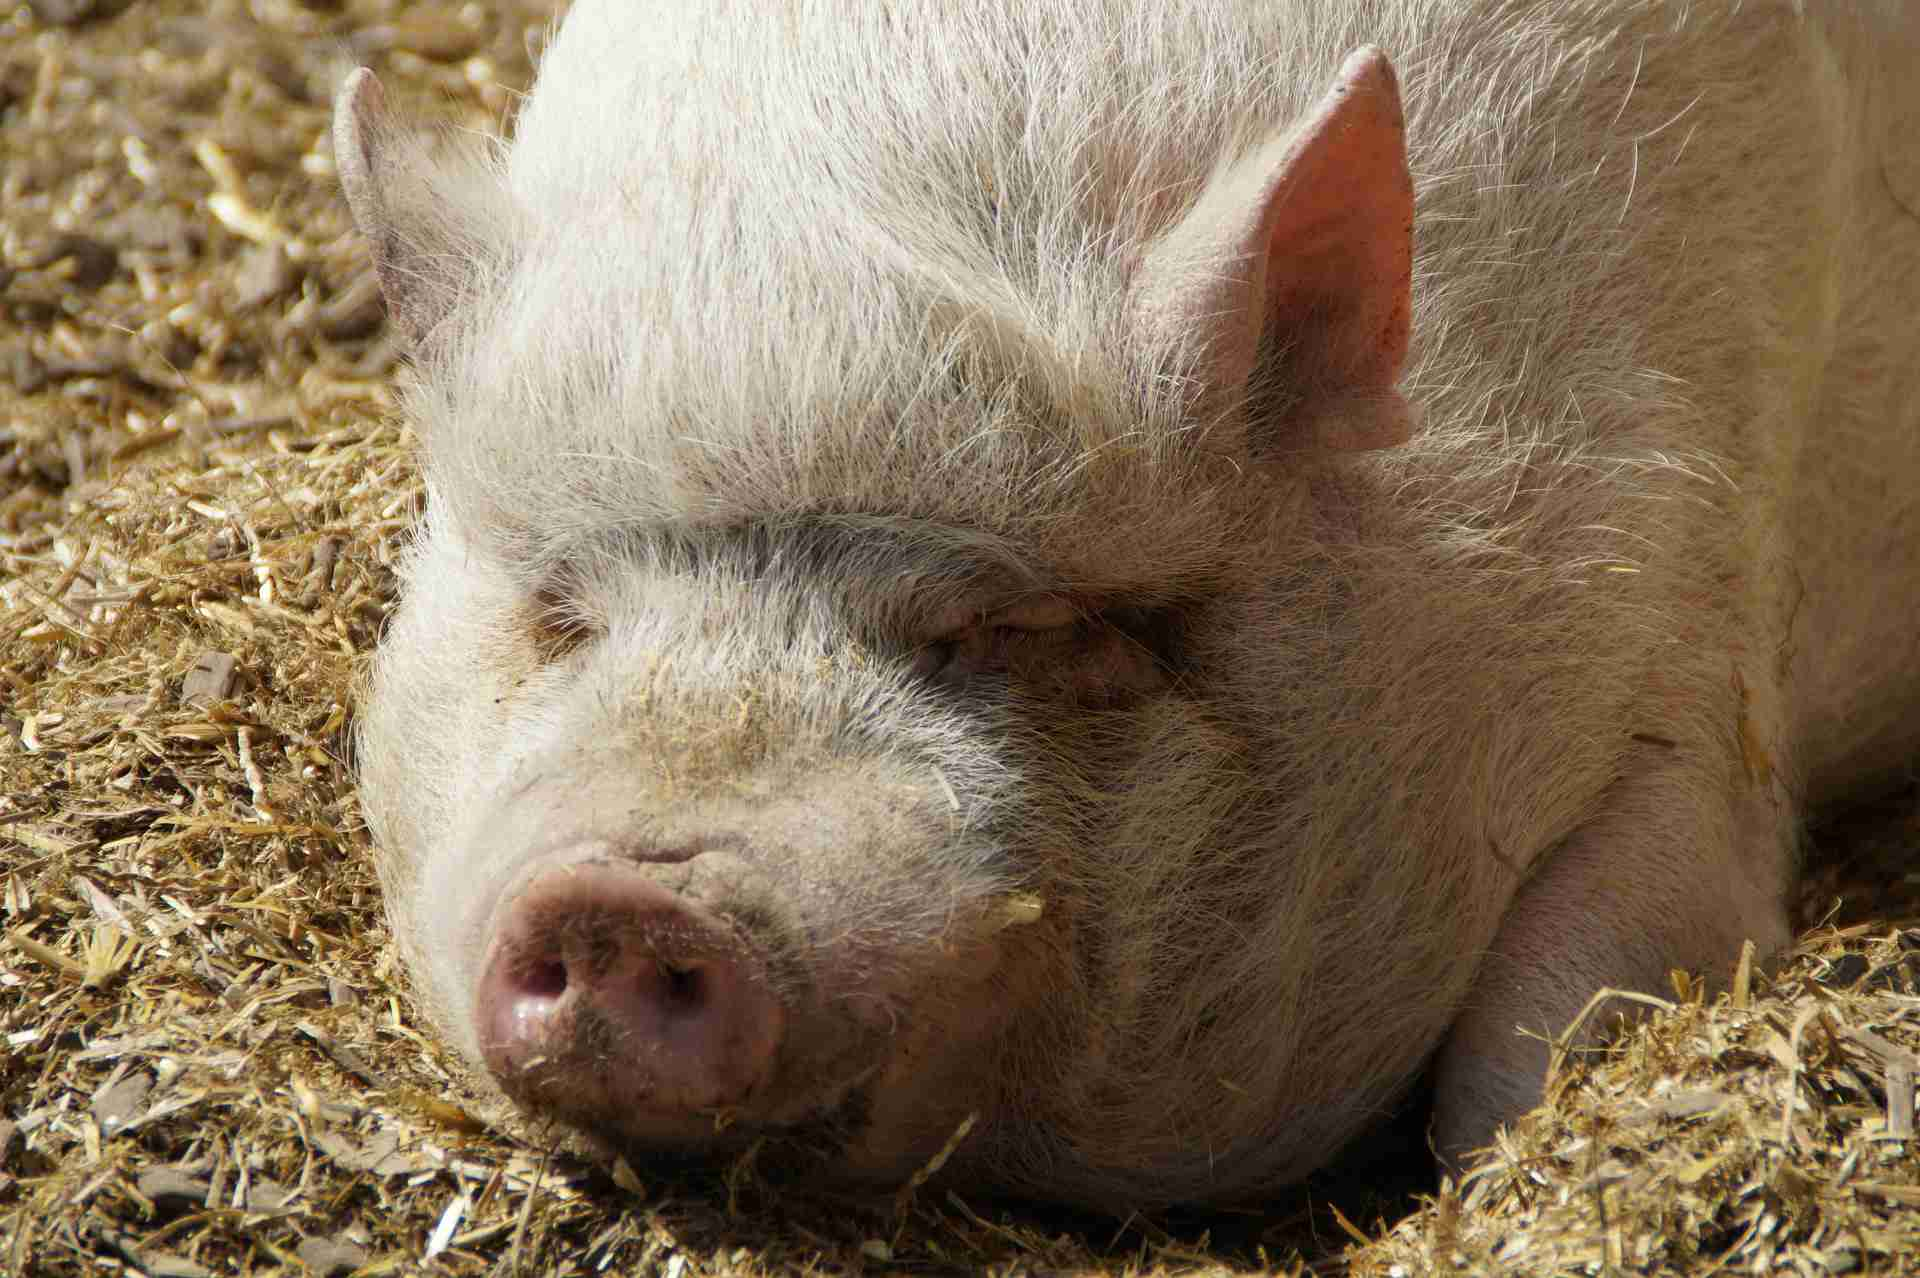 A close-up of a potbellied pig.